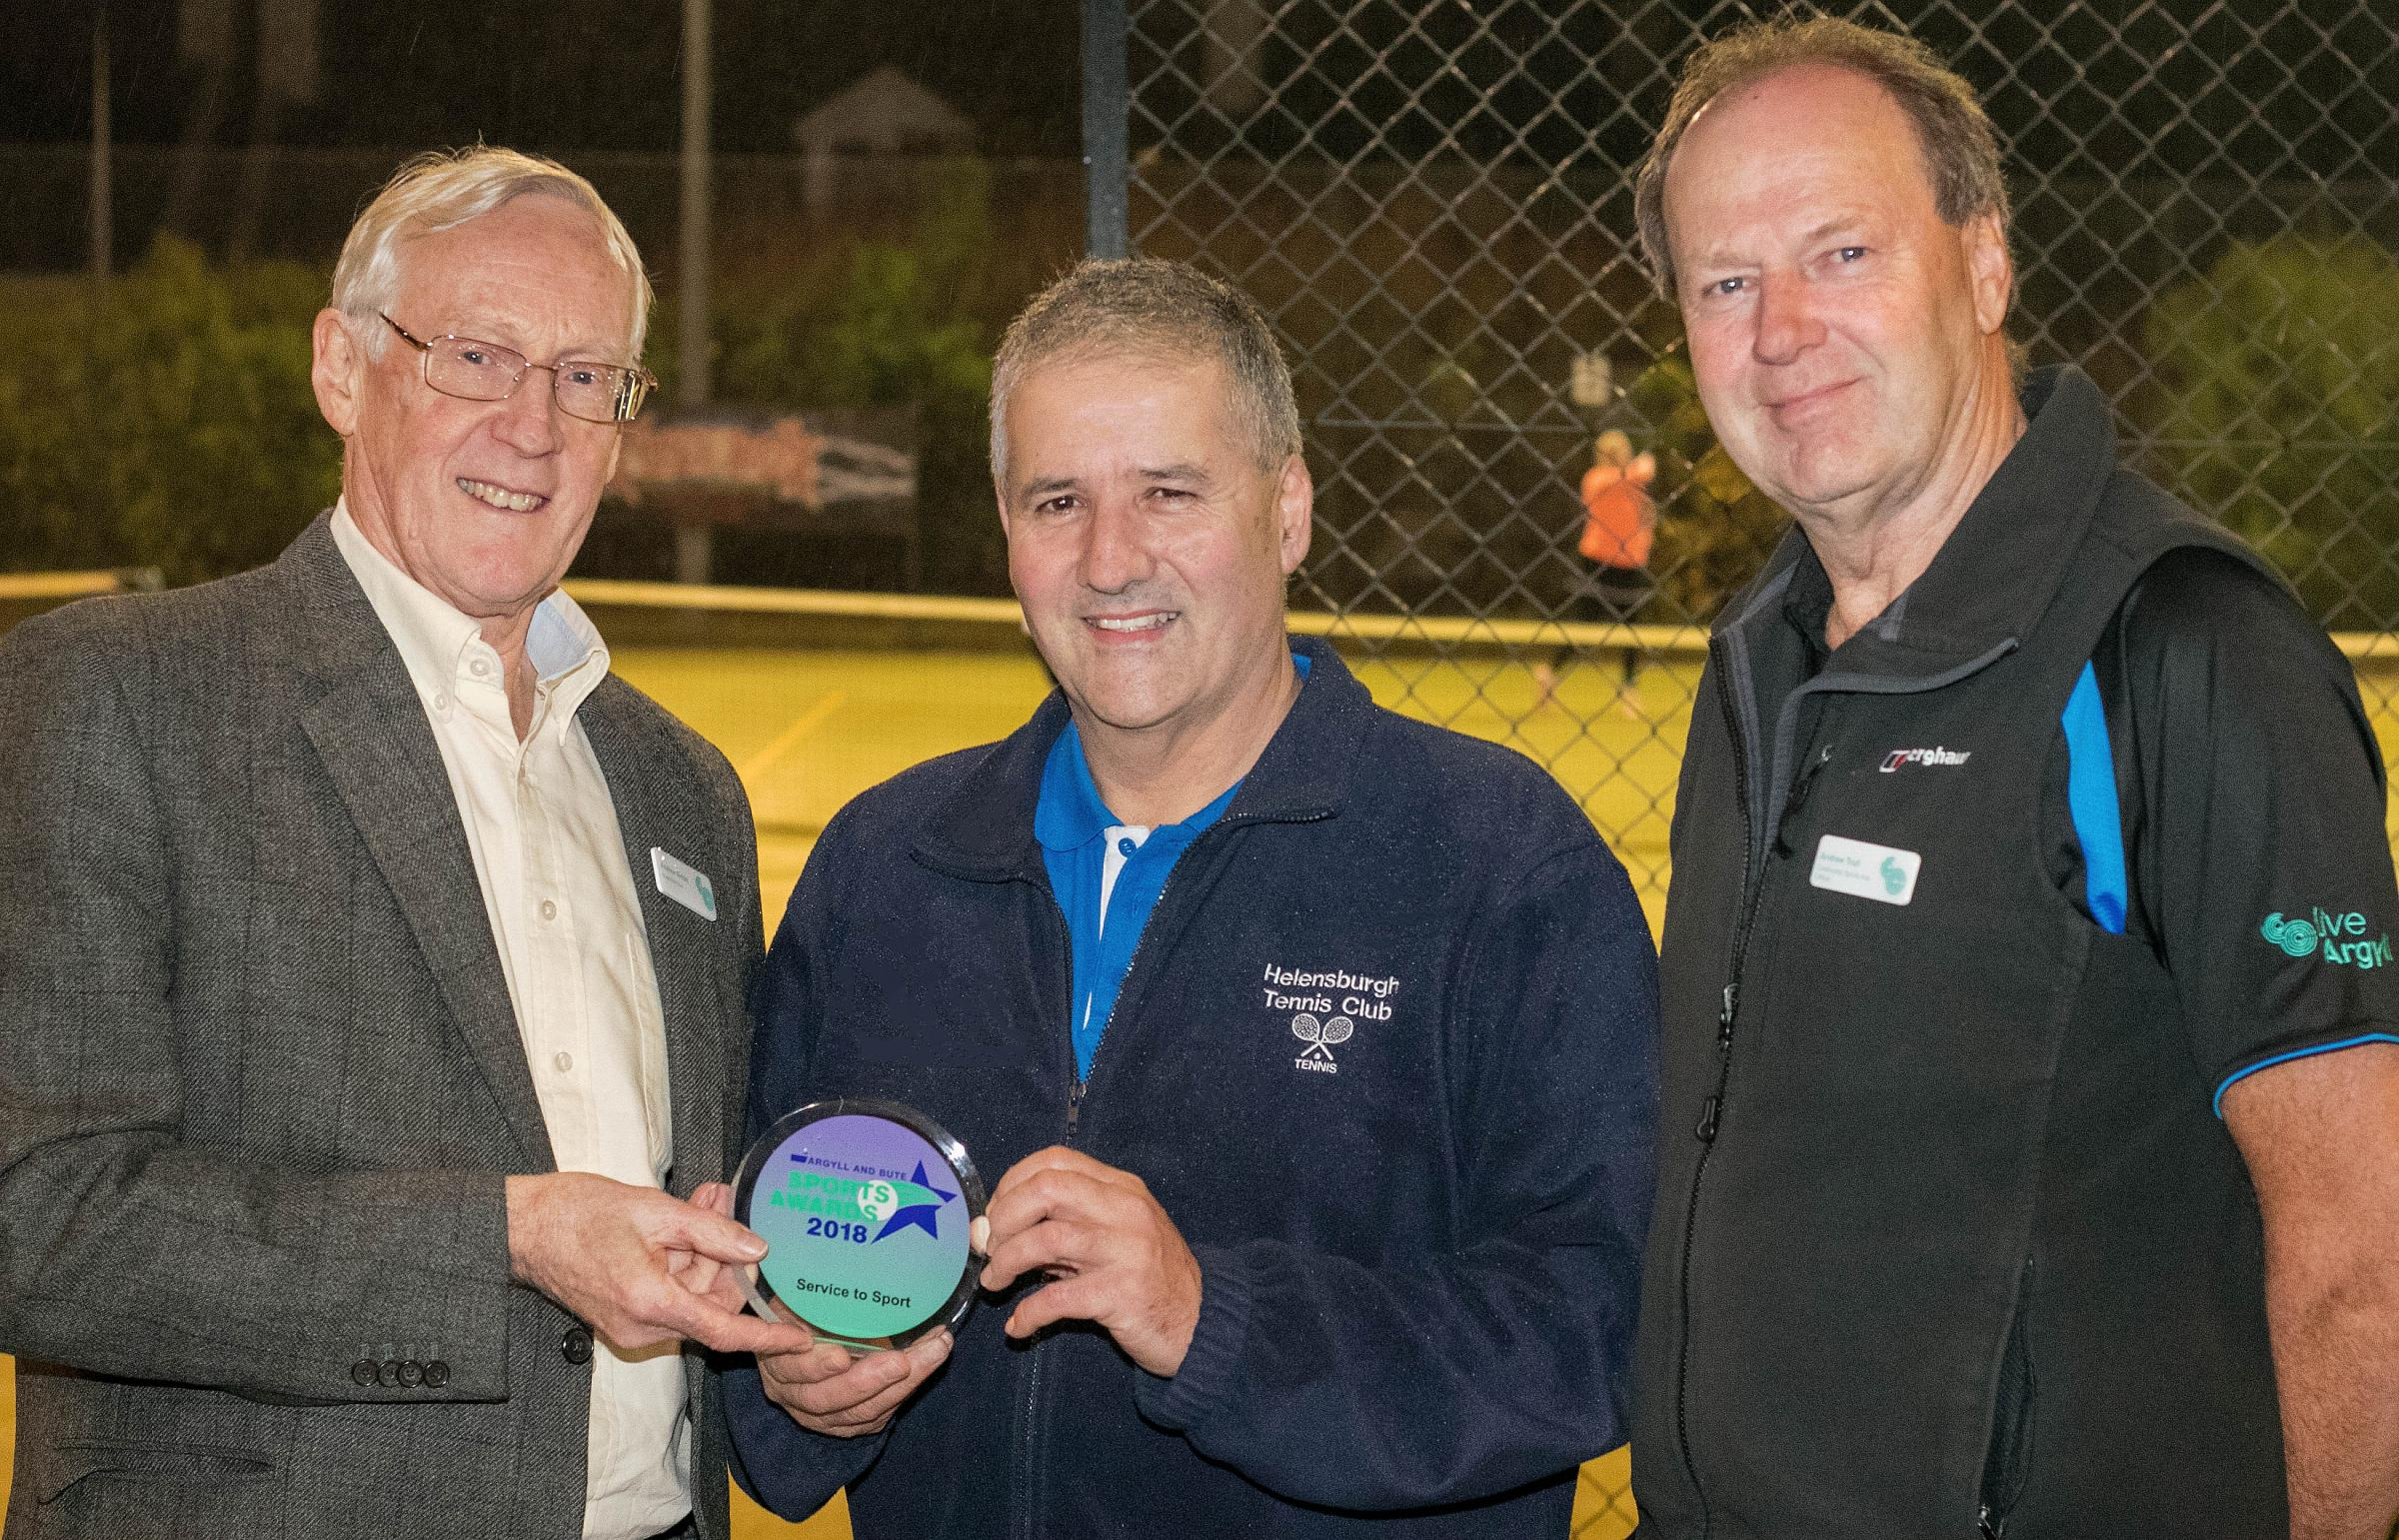 Bobby Kerr (centre) receives his Service to Sport award from Andrew Nisbet and Andy Trull